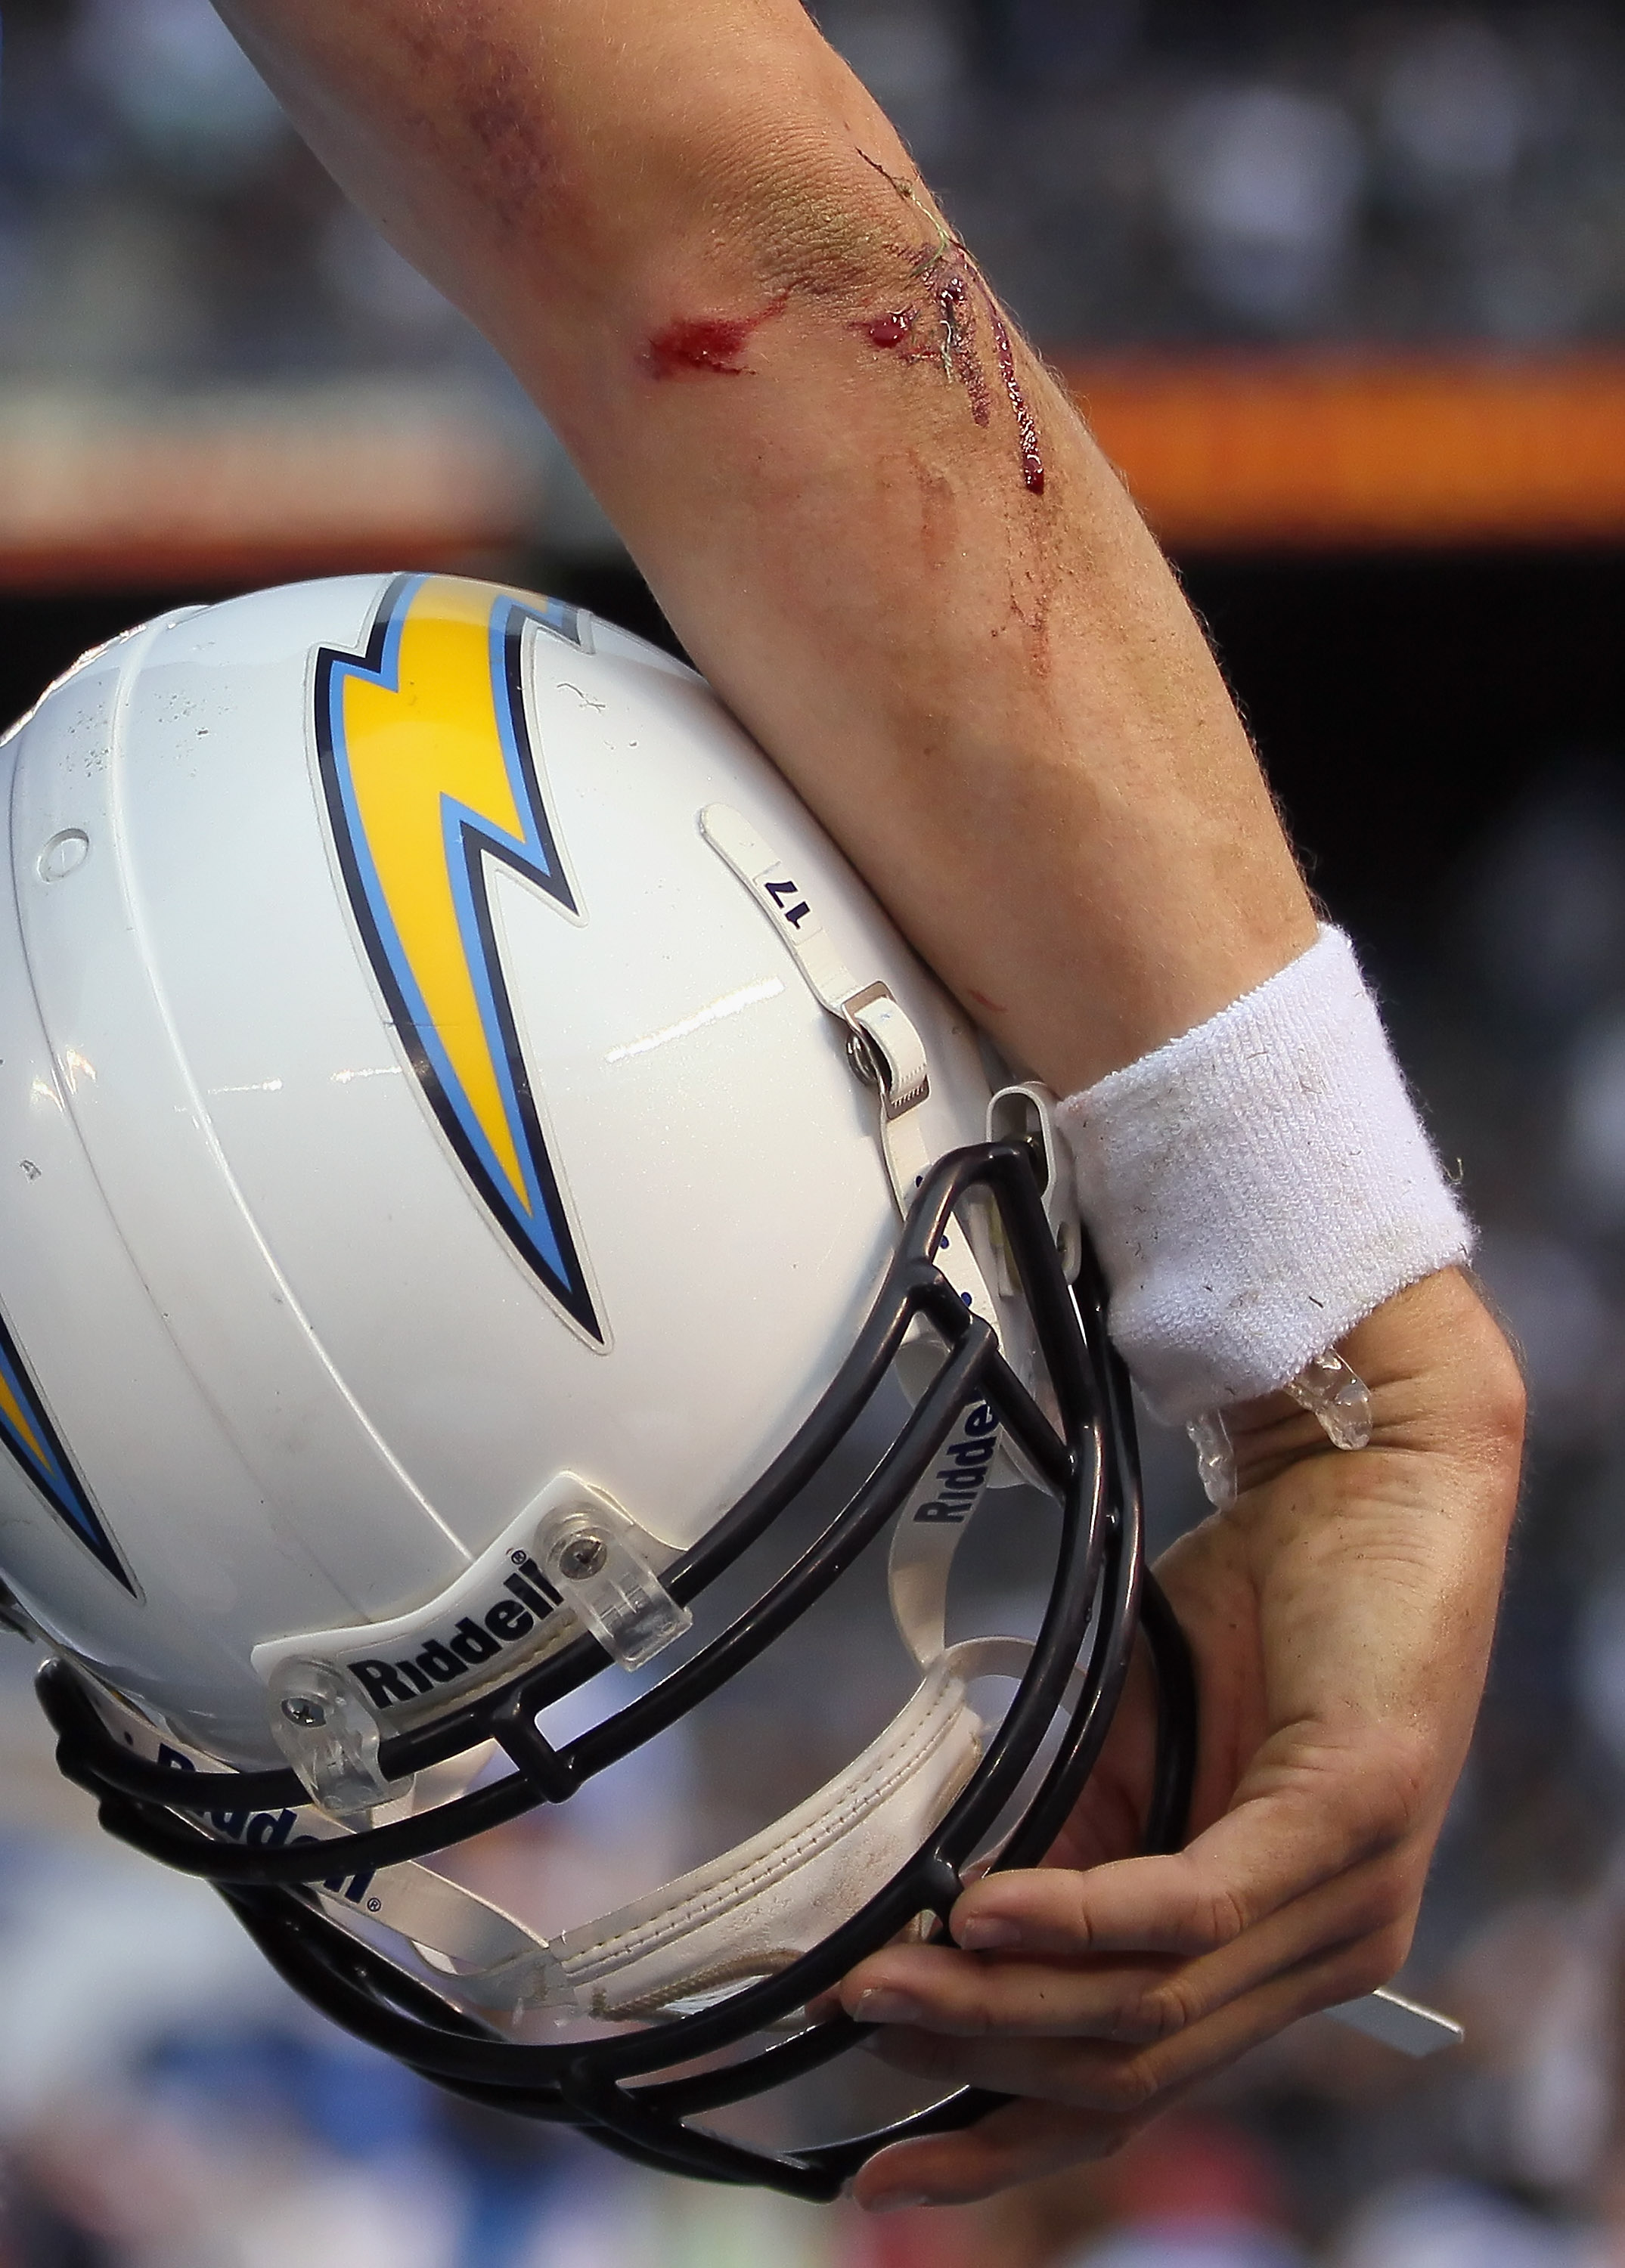 SAN DIEGO - DECEMBER 05:  The bloody elbow of quarterback Philip Rivers #17 of the San Diego Chargers is seen in the closing minutes of the fourth quarter against the Oakland Raiders at Qualcomm Stadium on December 5, 2010 in San Diego, California. The Ra